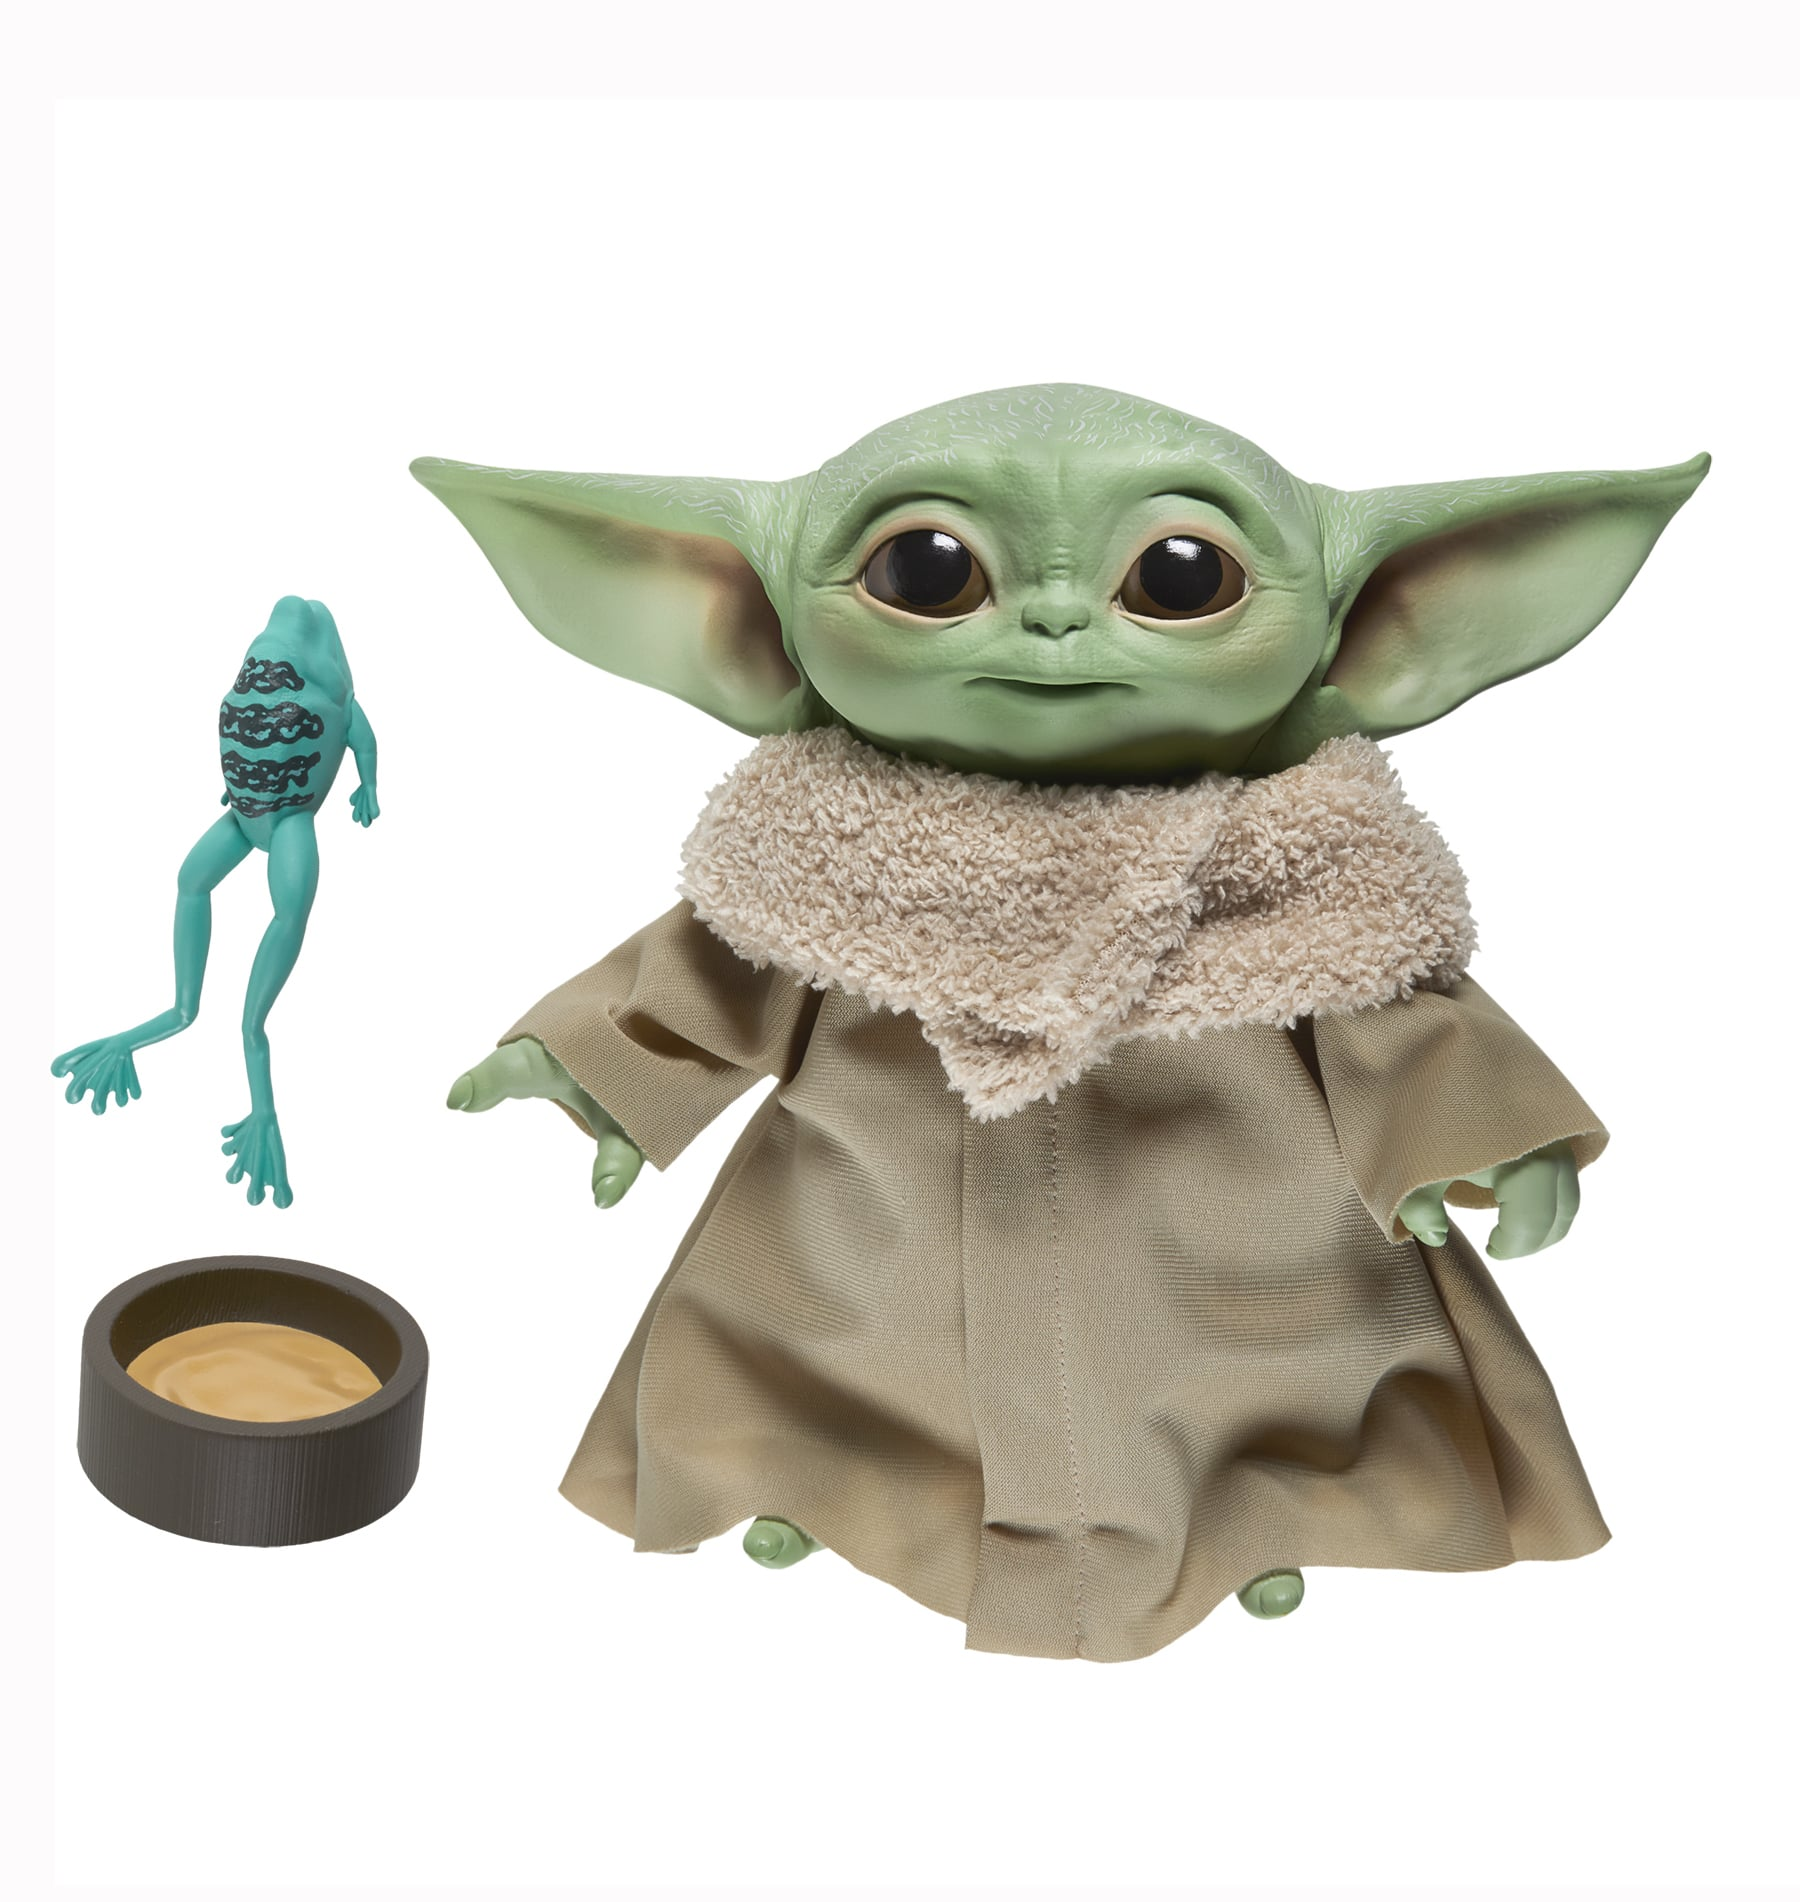 Hasbro Is Releasing a Baby Yoda Talking Plush in 2020, and the Force Is Adorable With This One